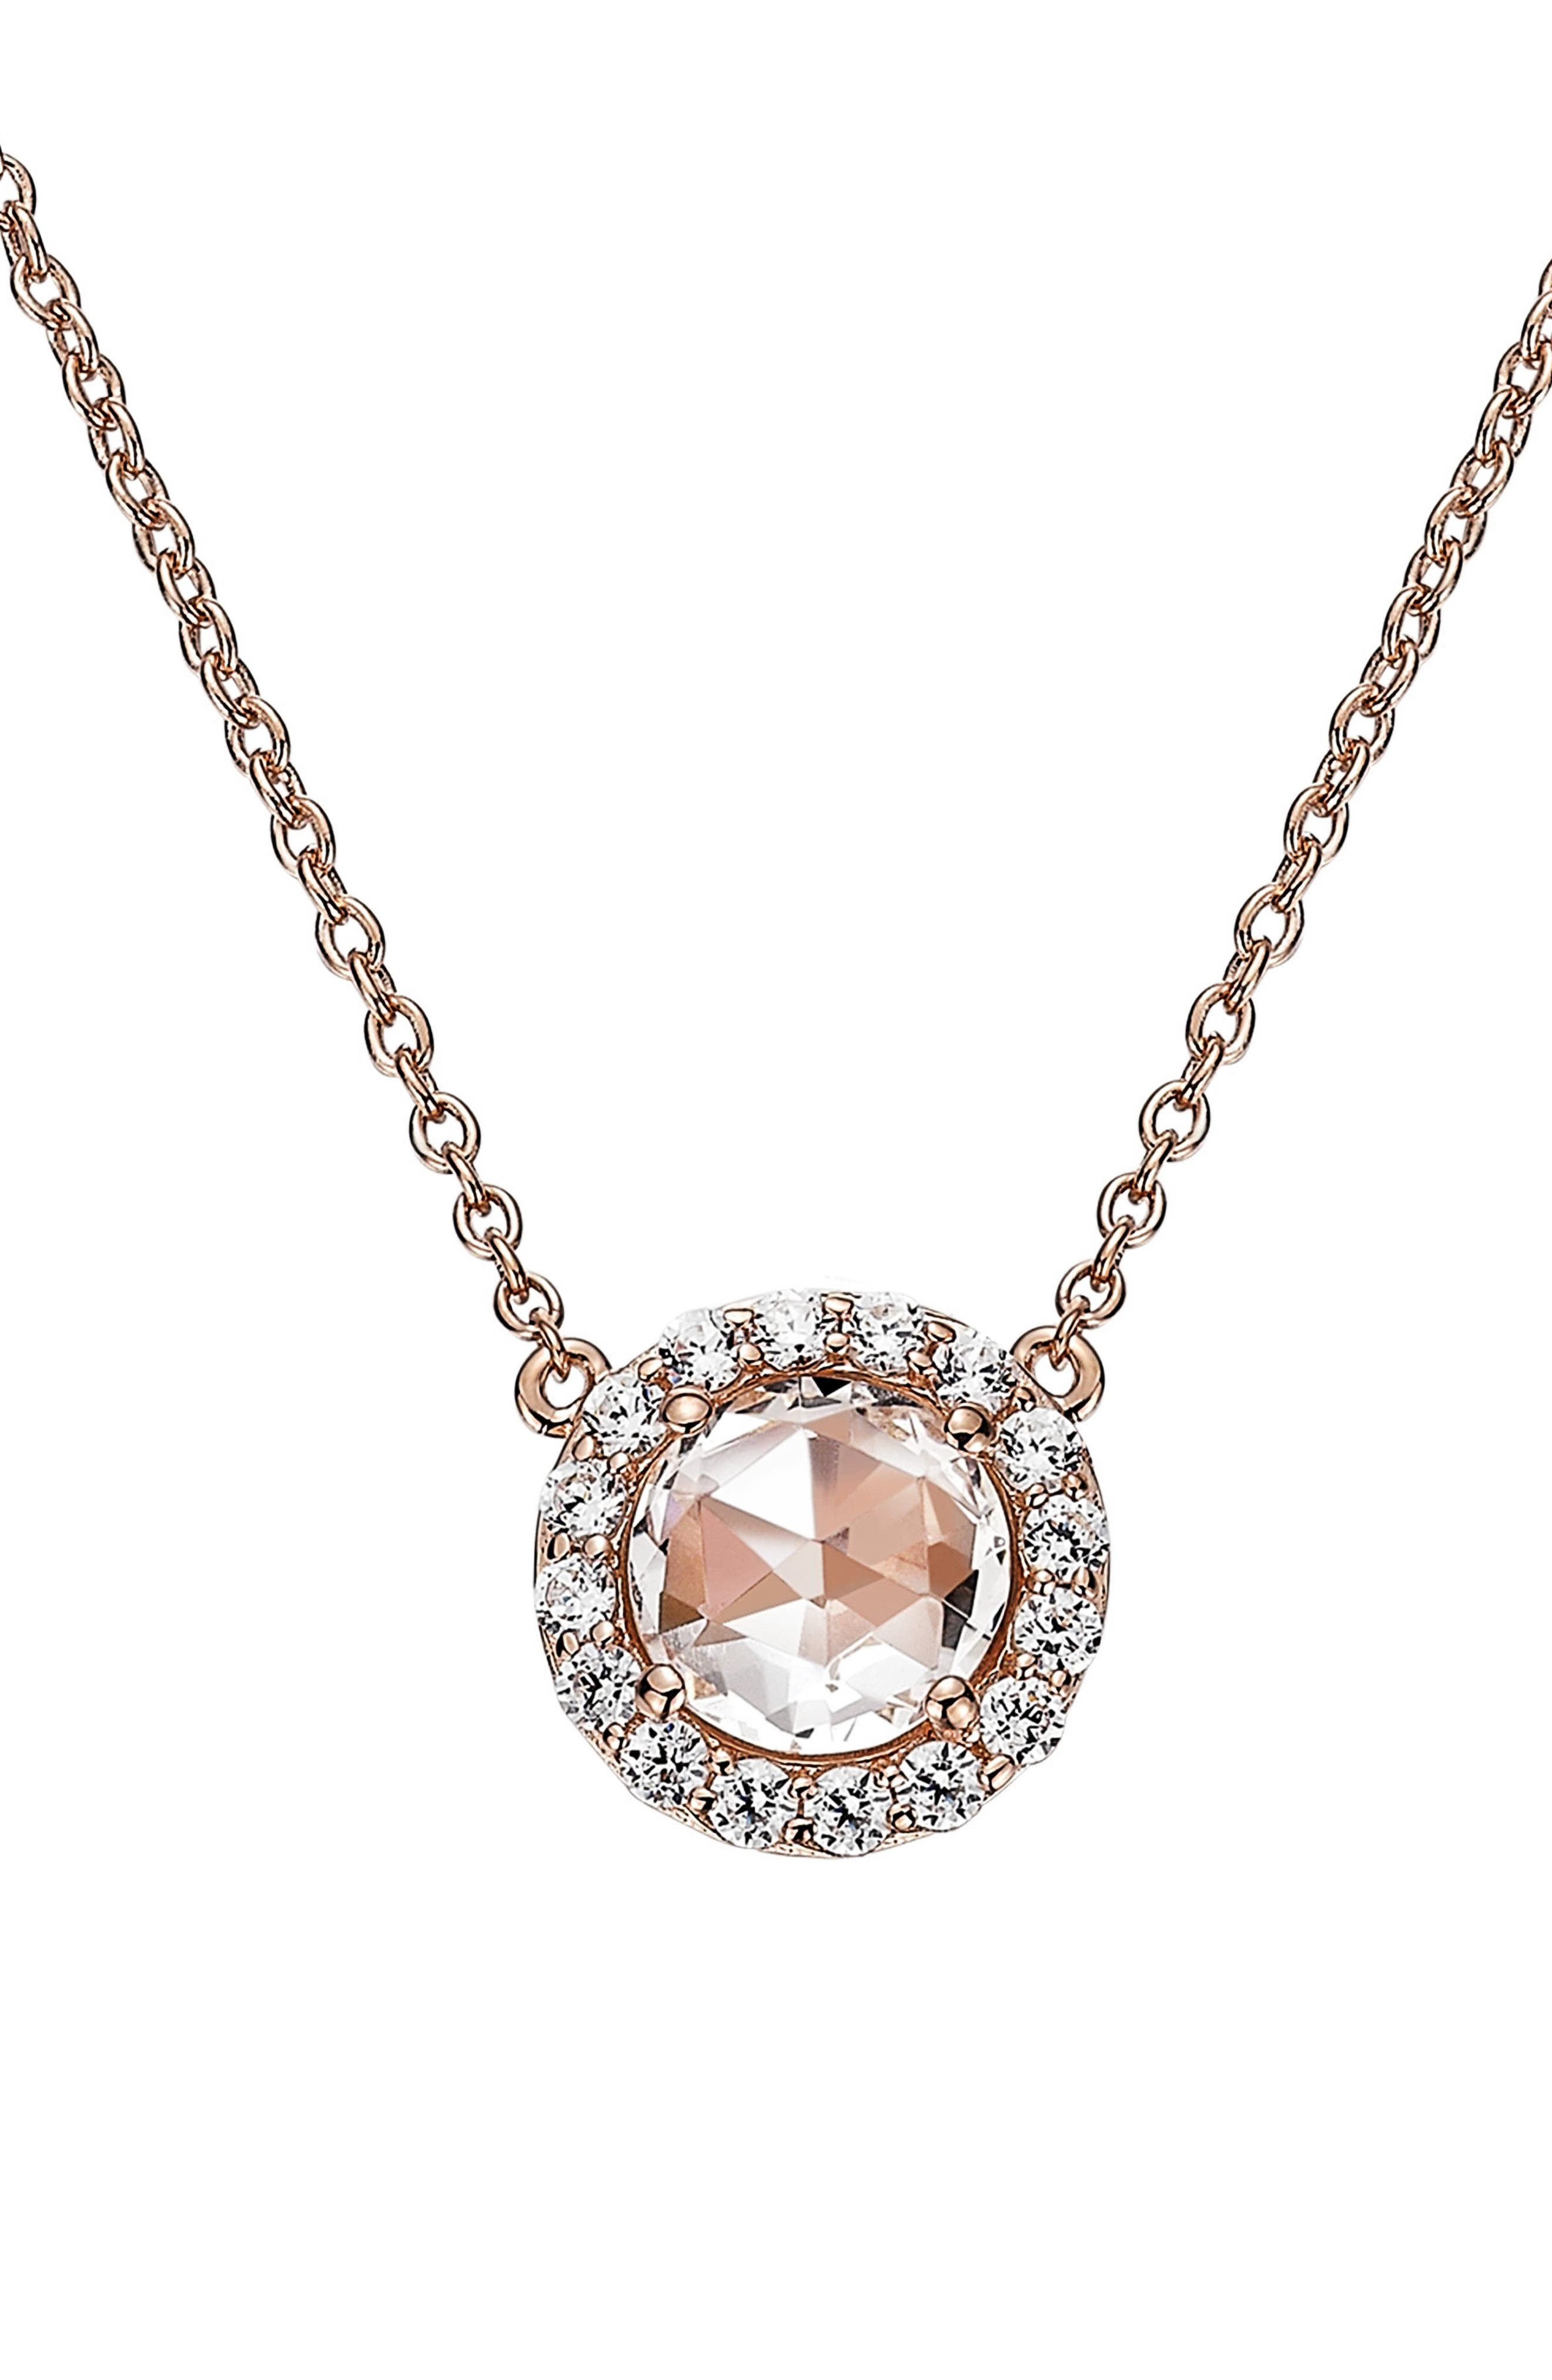 Simulated Diamond Pendant Necklace,                         Main,                         color, PINK / ROSE GOLD